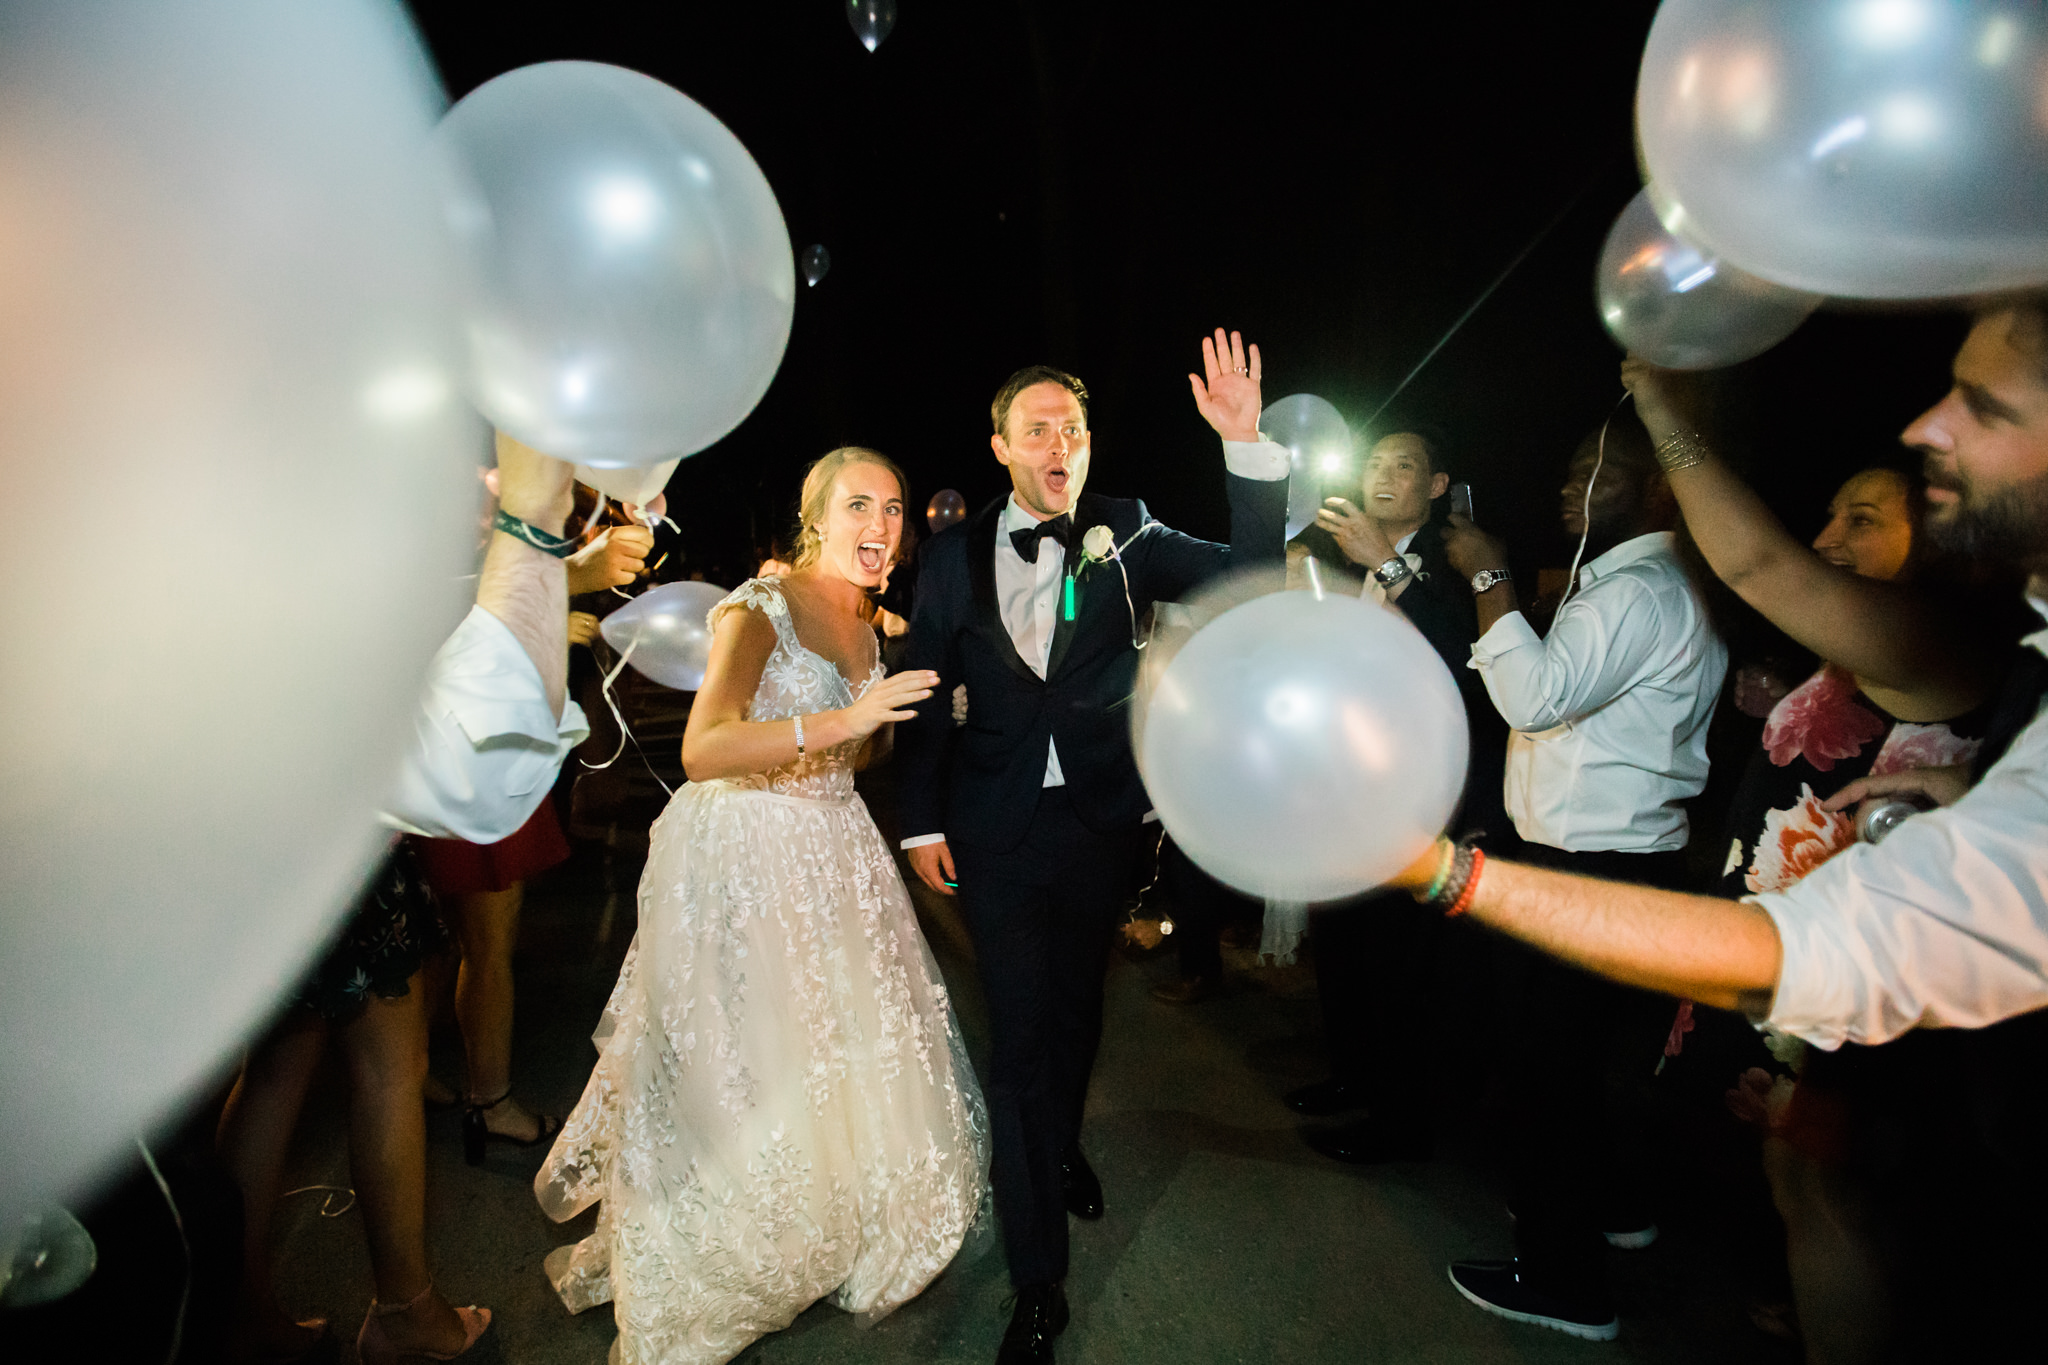 Low light wedding photo examples